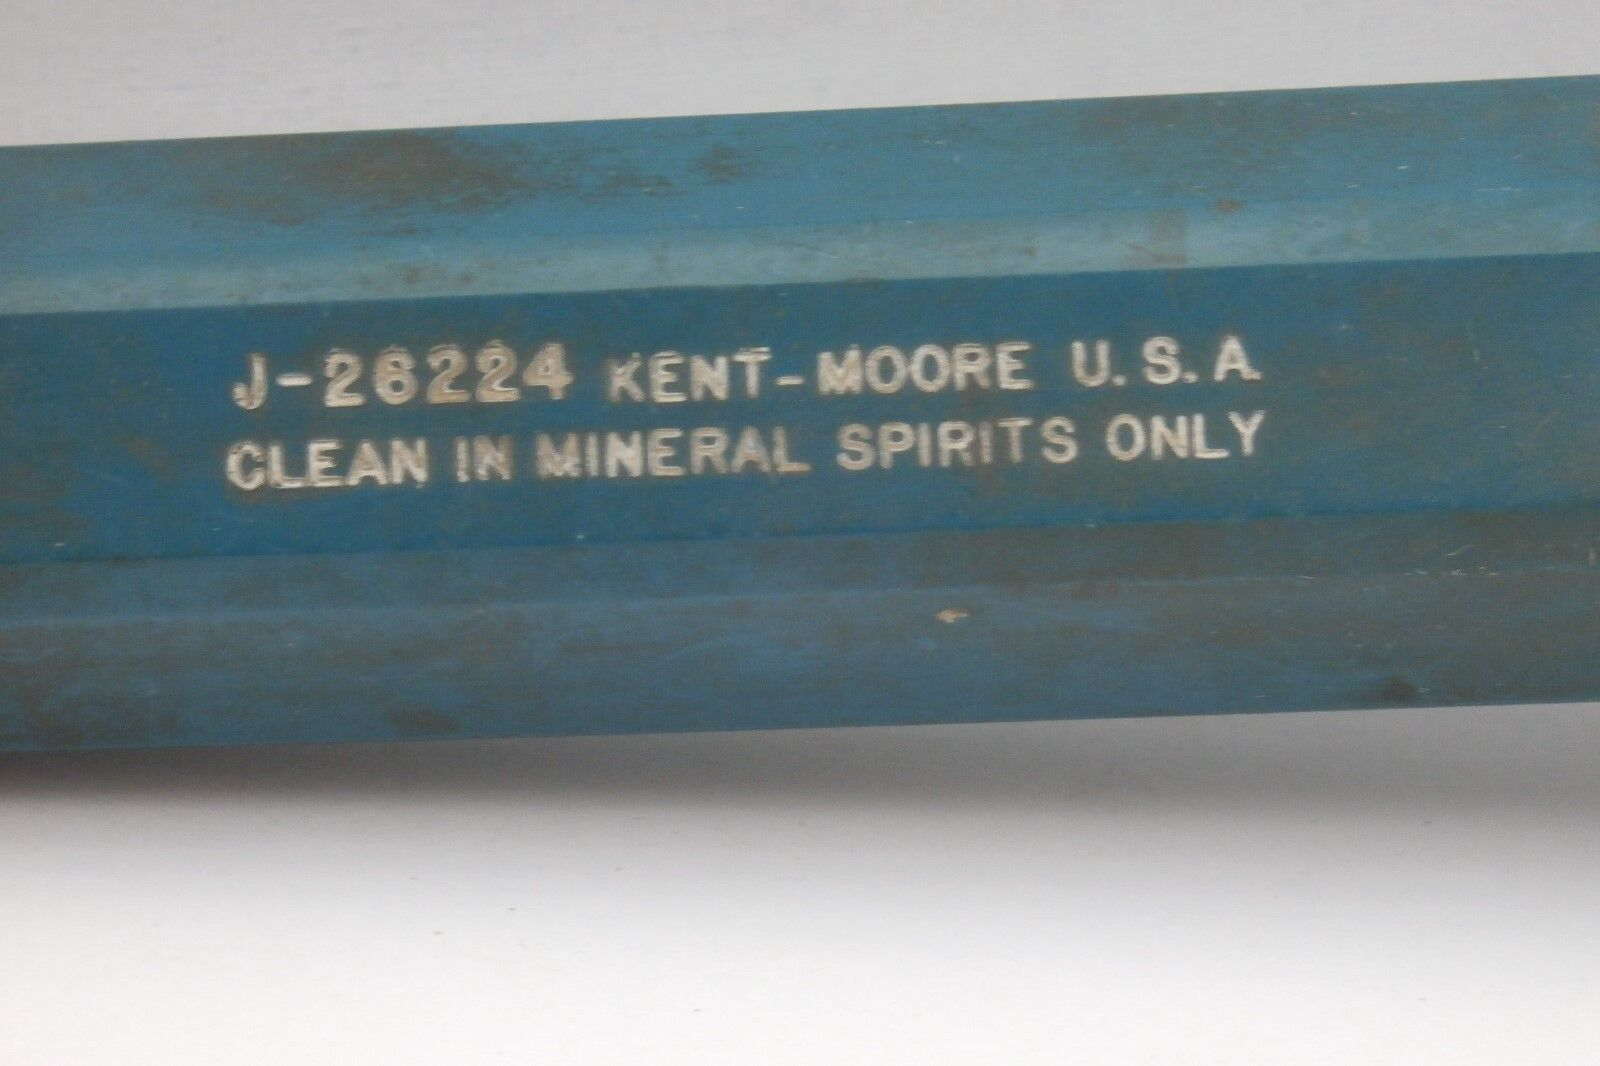 J26224 Clutch Gear Seal Installer Tool, Kent Moore, Free Us Ship - Used for sale in Parkville ...